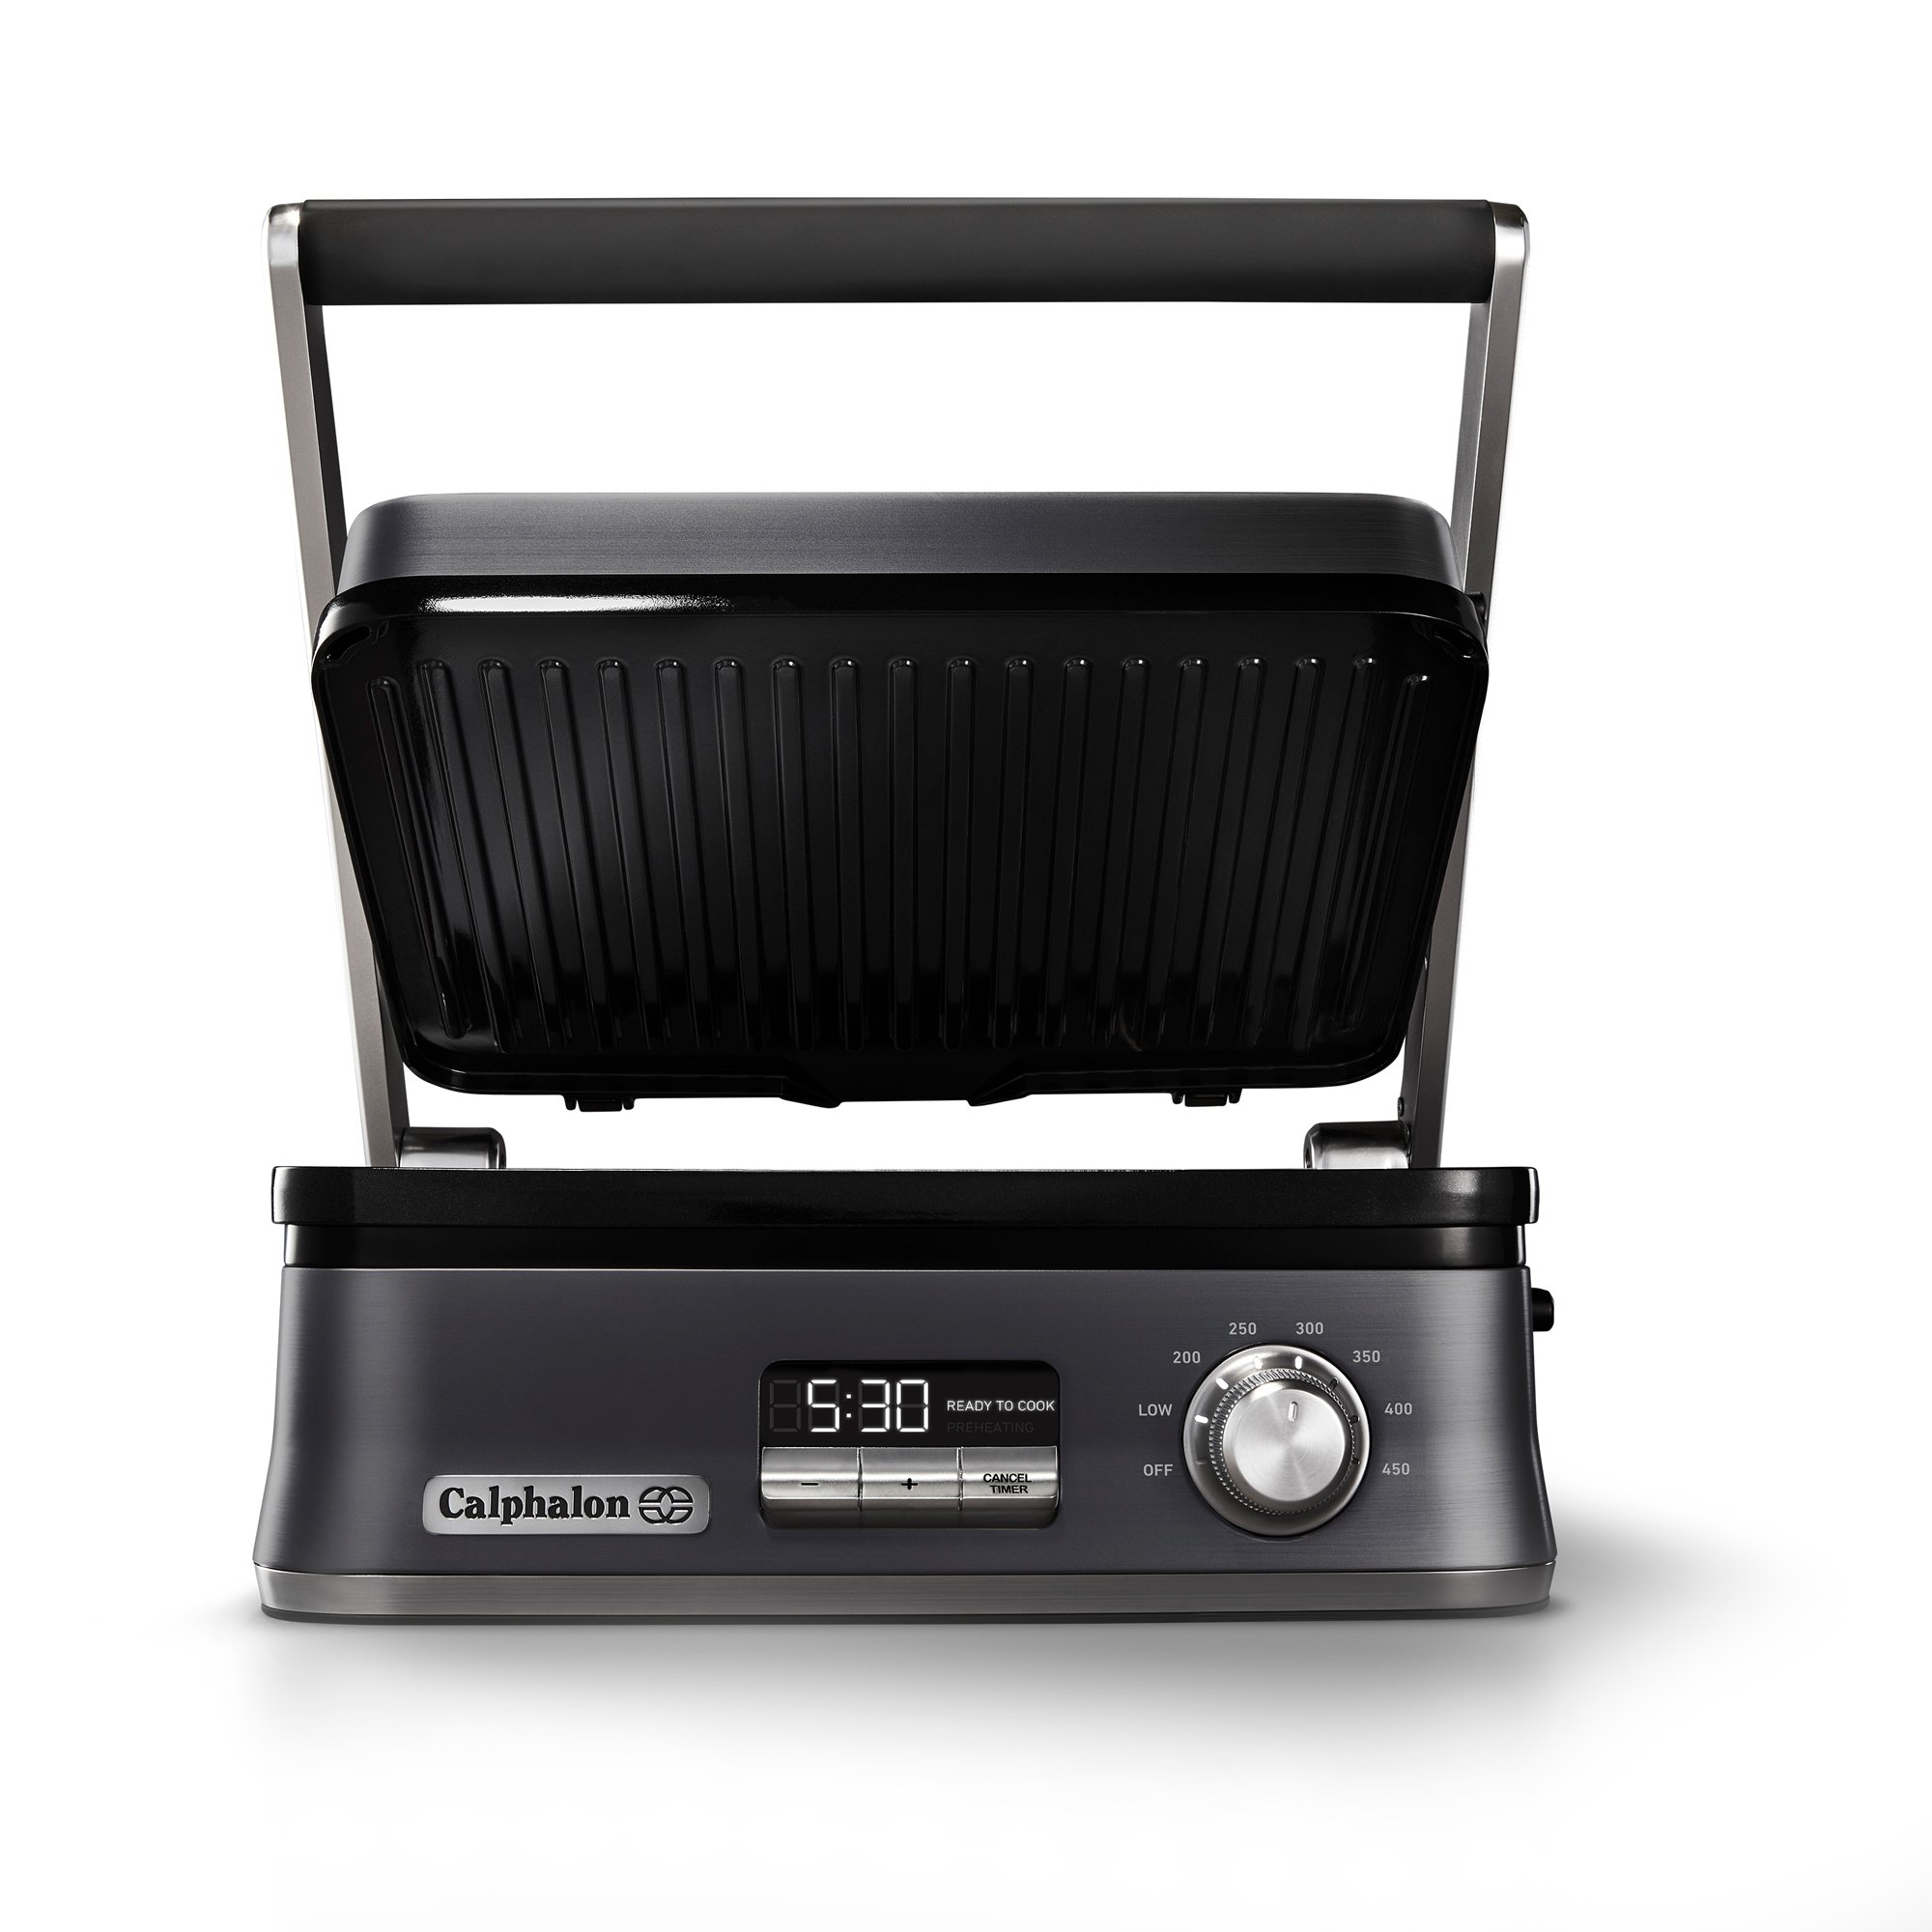 Even Sear Multi-Grill